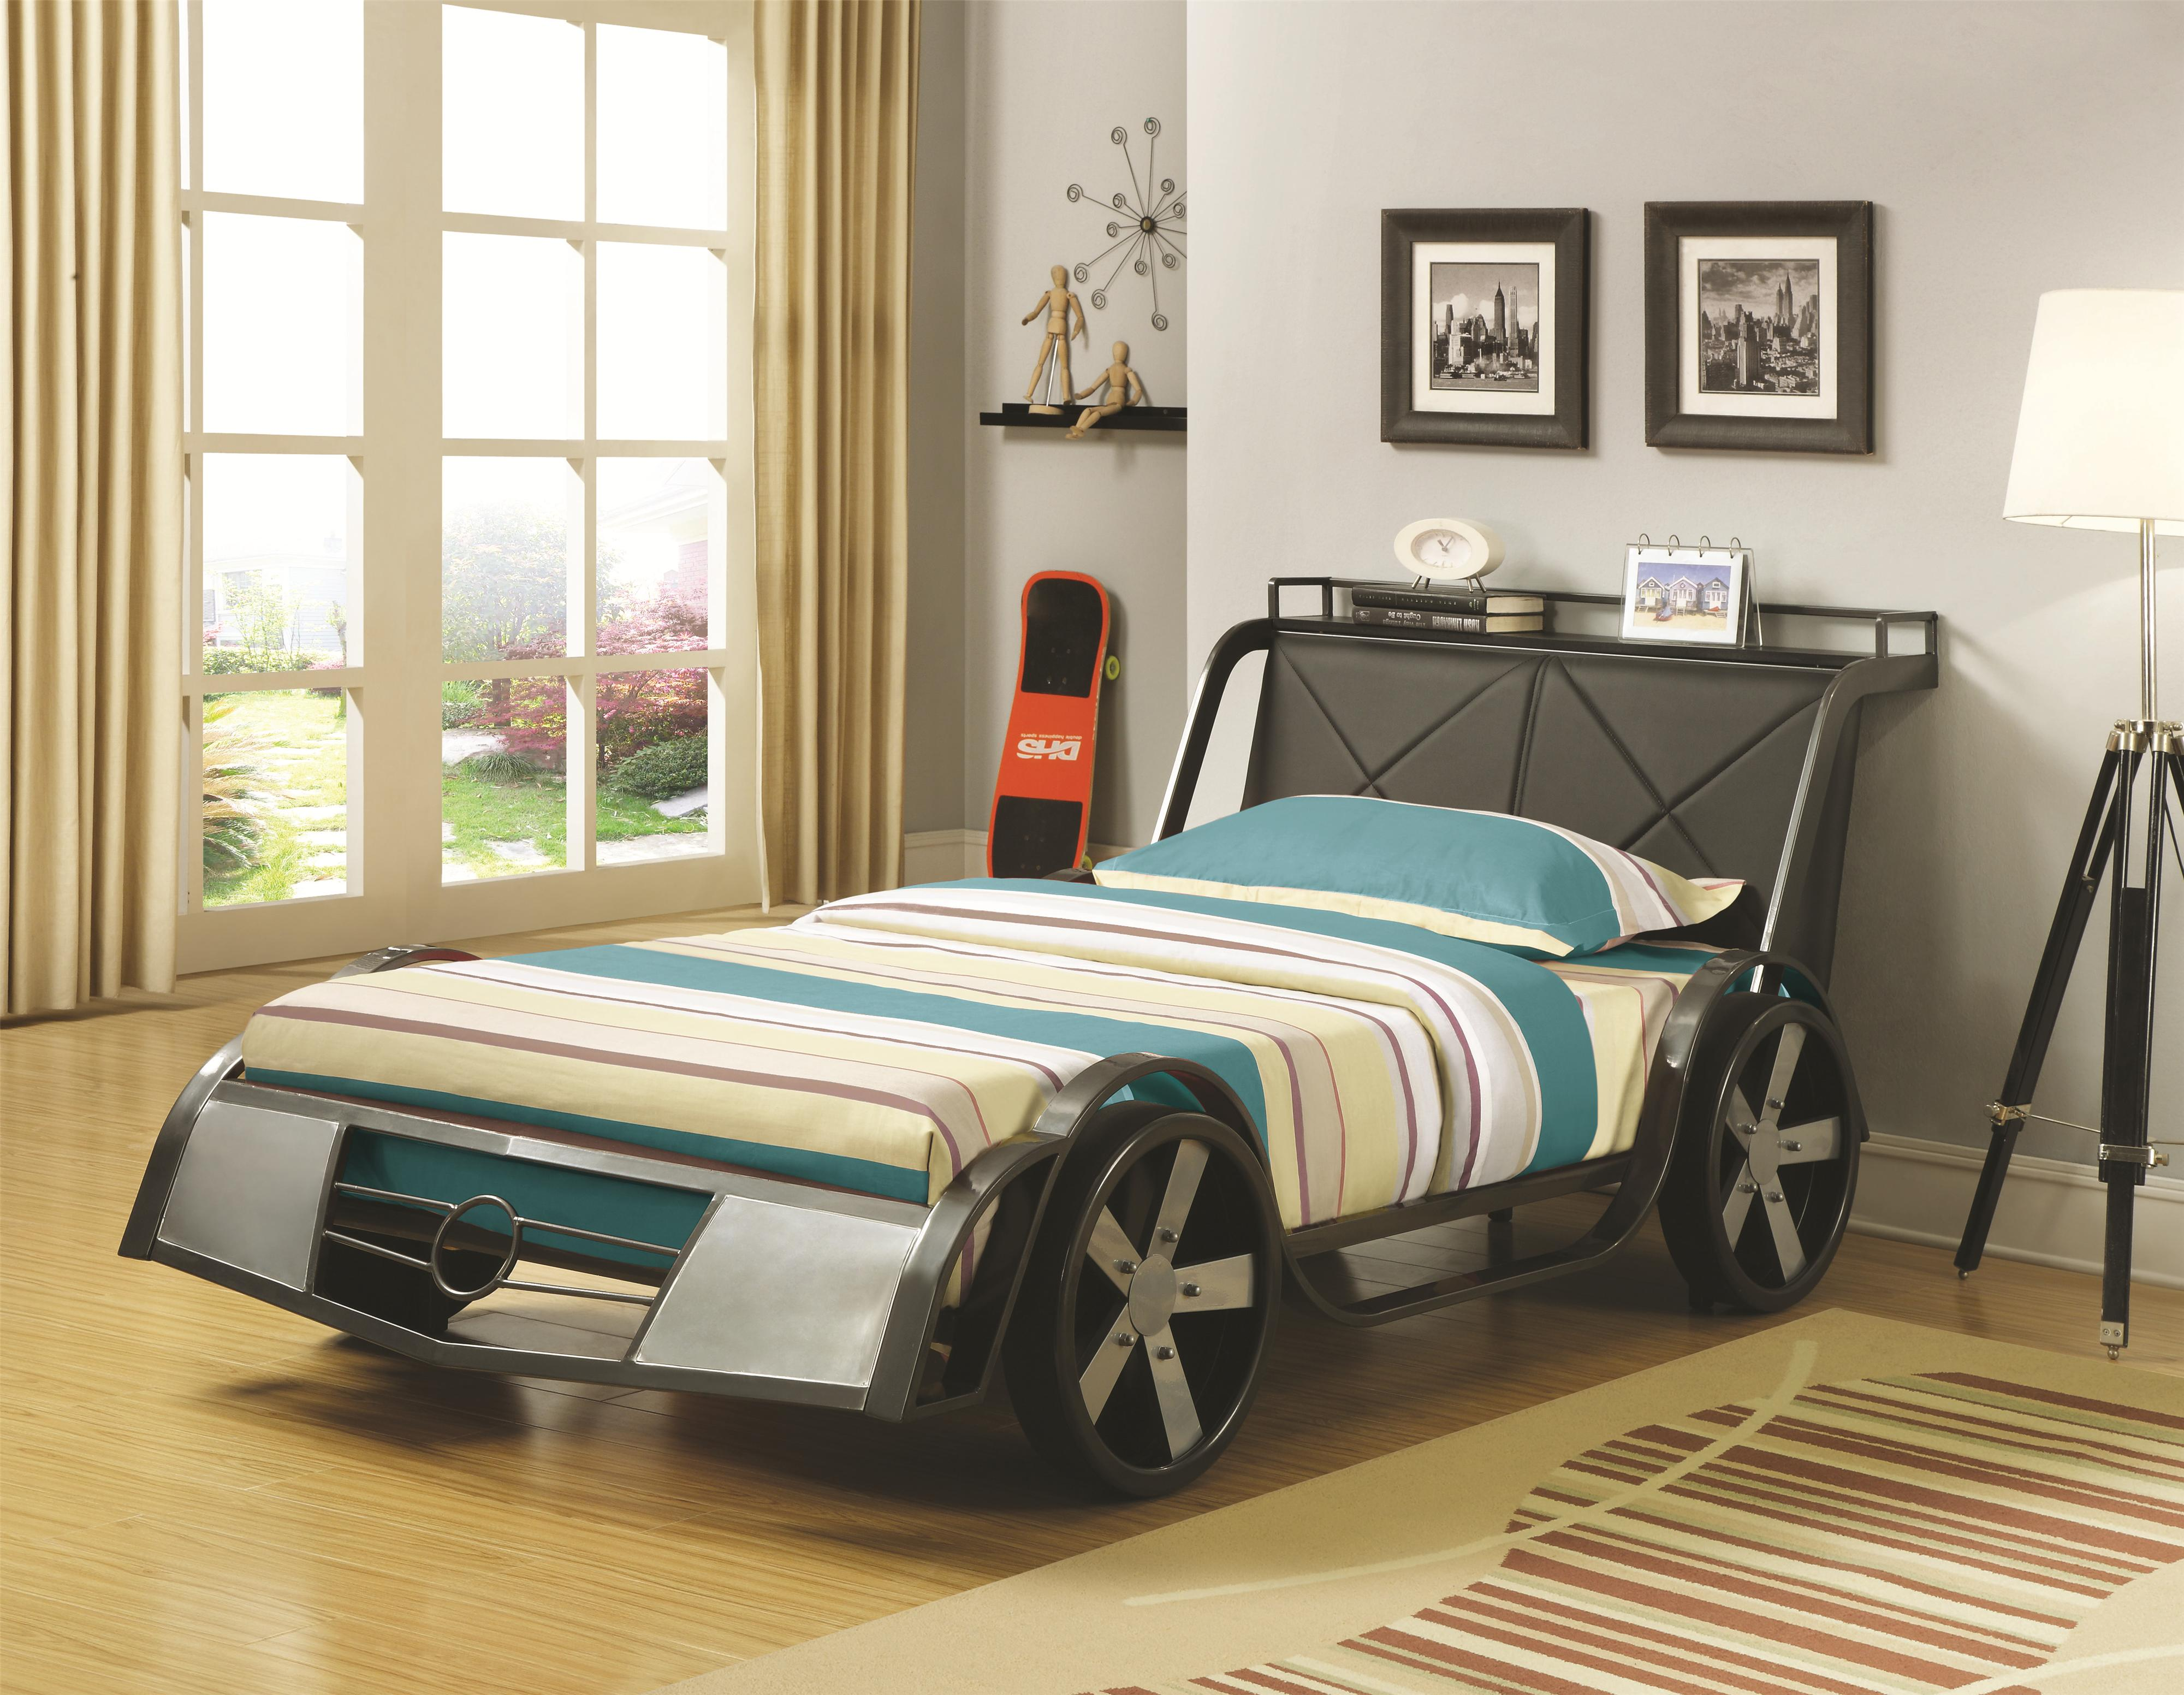 coaster novelty beds jeep twin bed coaster fine furniture - Coaster Bed Frame